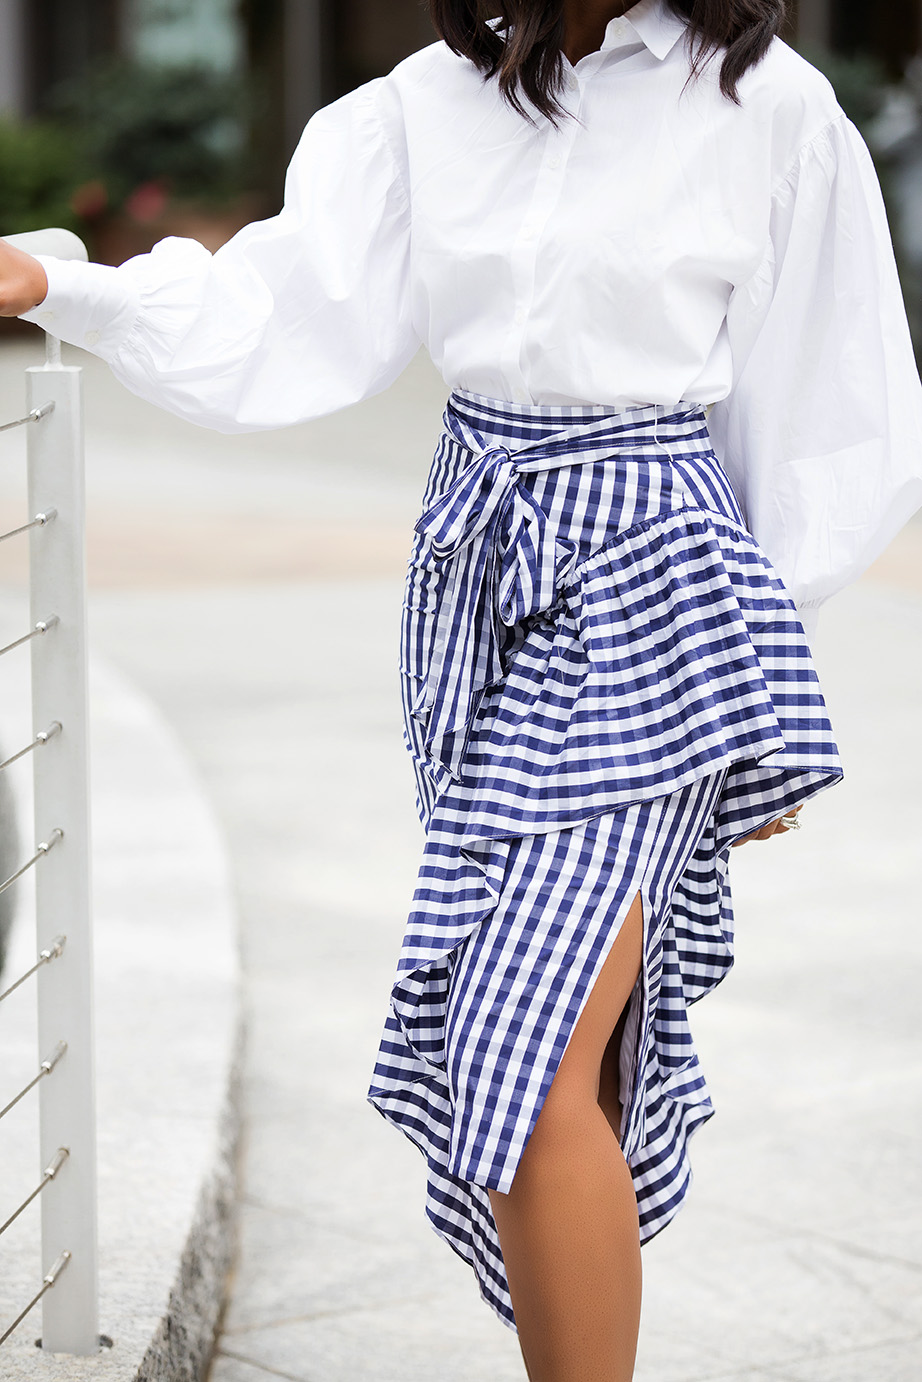 Milly cascading gingham skirt, www.jadore-fashion.com